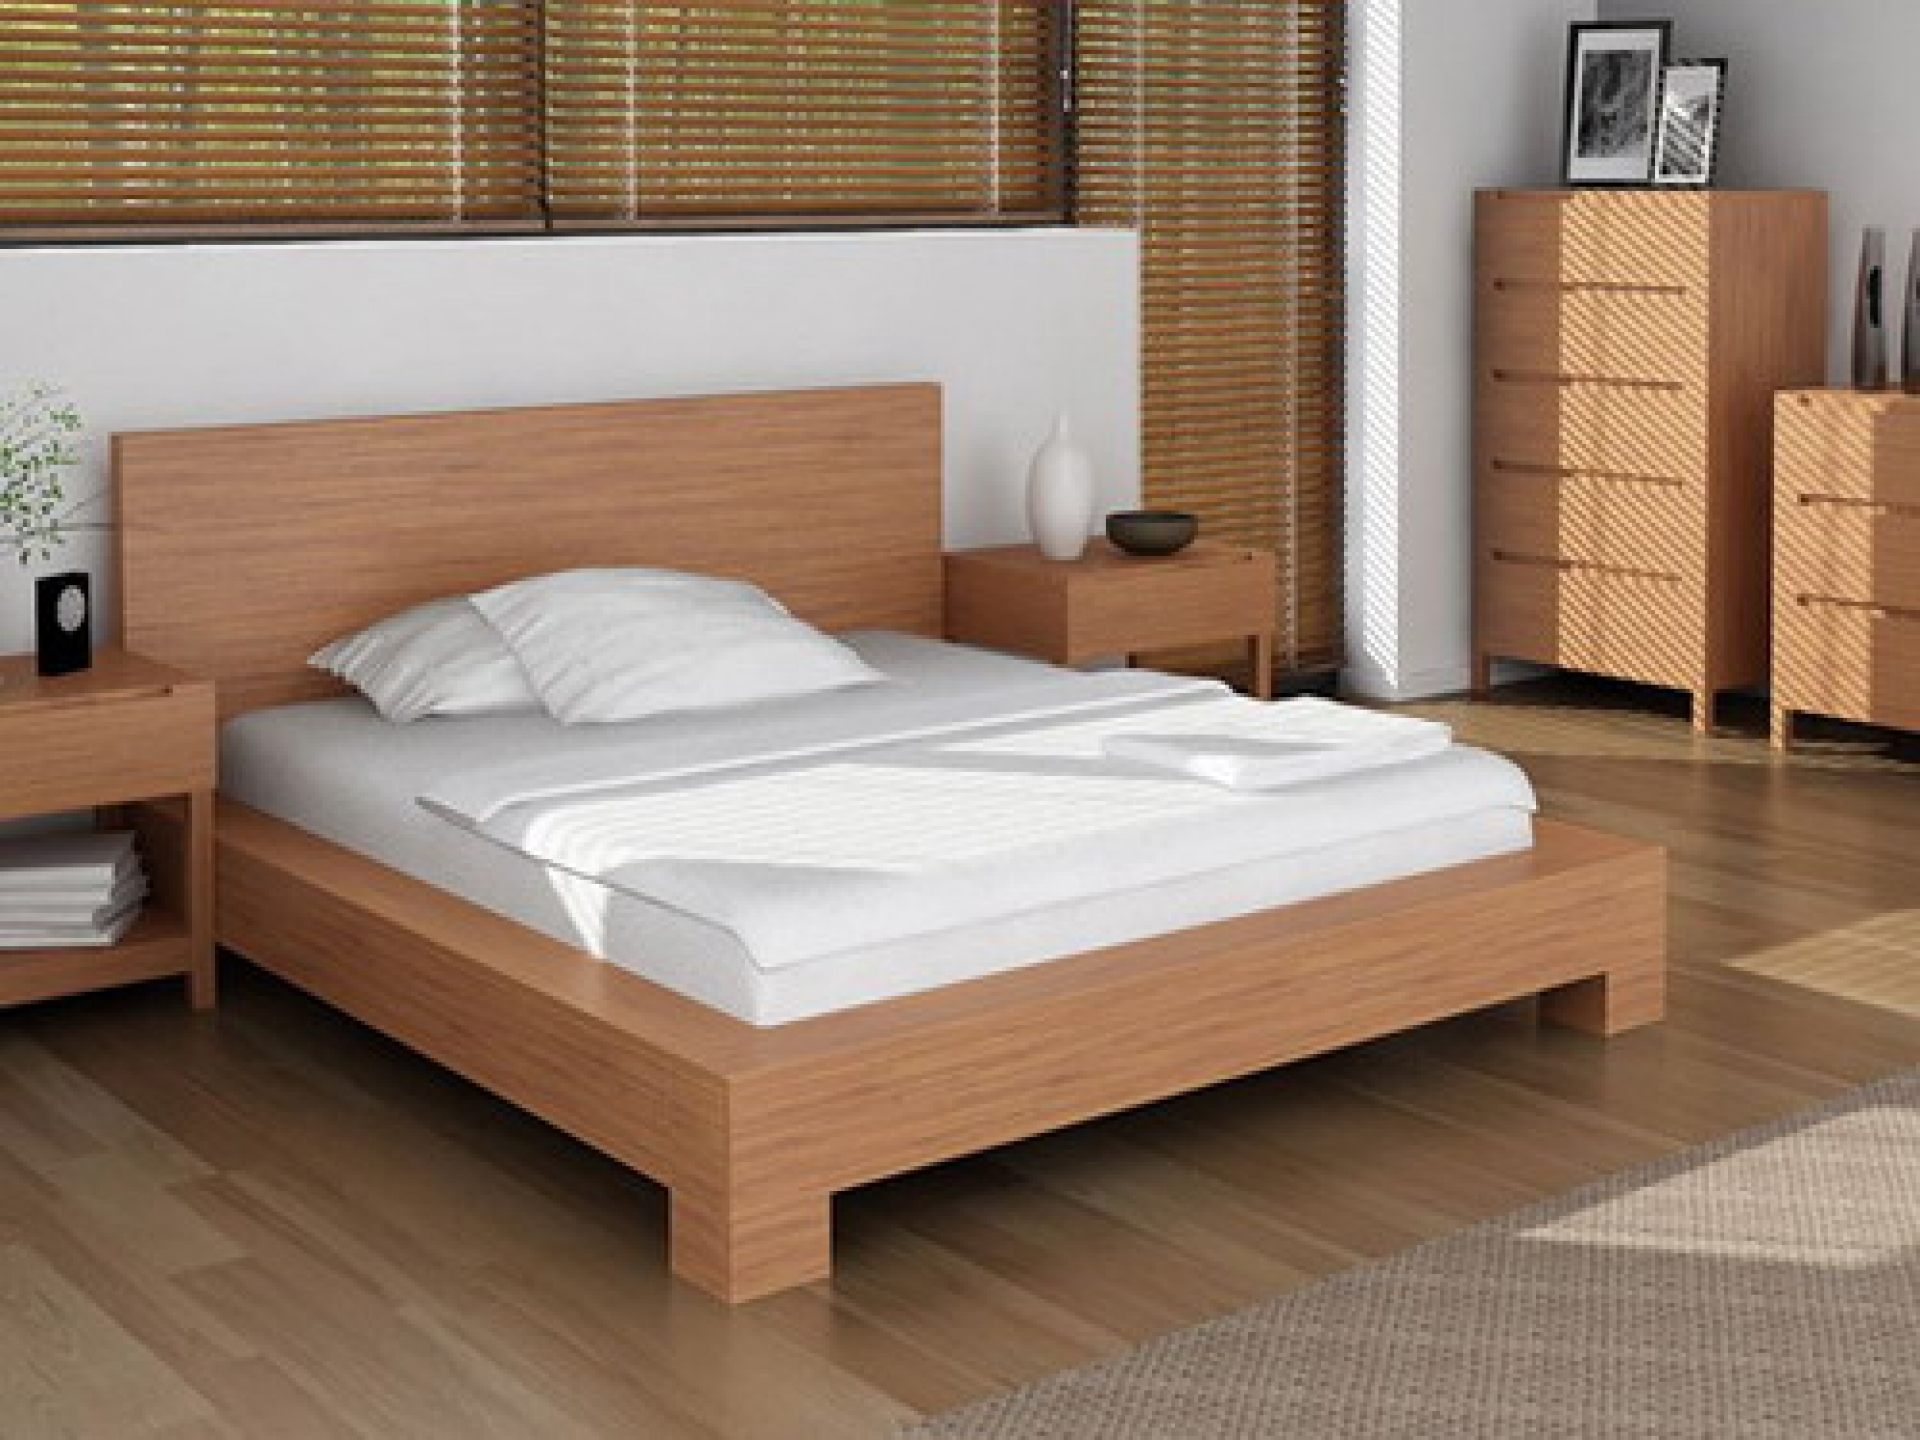 simple wood bed frame ideas homesfeed